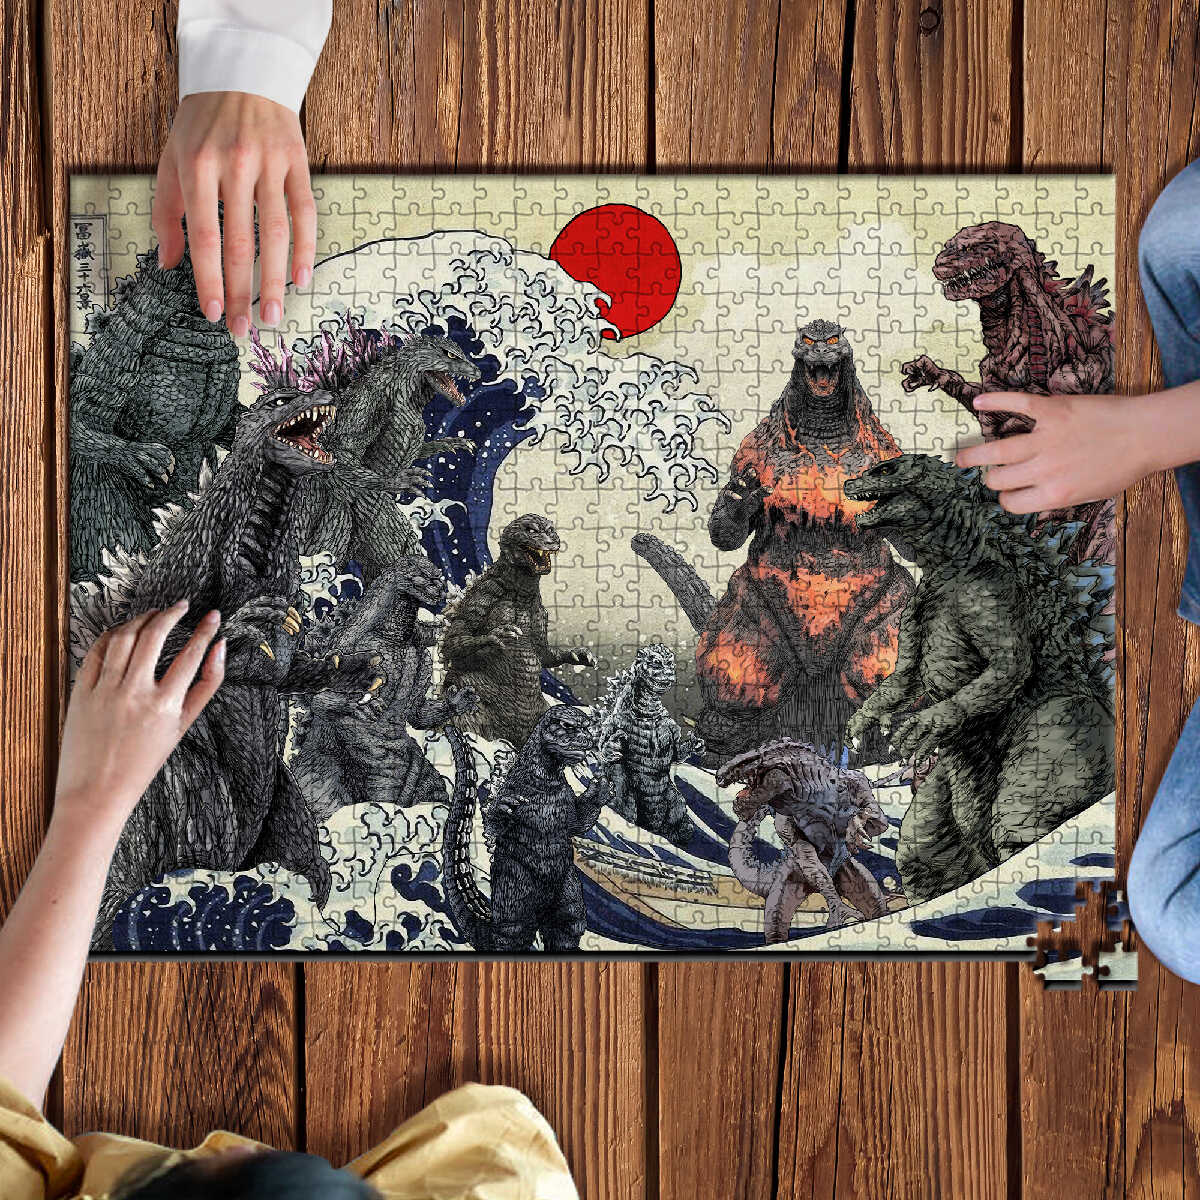 STEATEA Godzilla 1000 Pieces Wooden Jigsaw Puzzle Game Toys Gift Artwork for Adults Teens Enjoy with Family